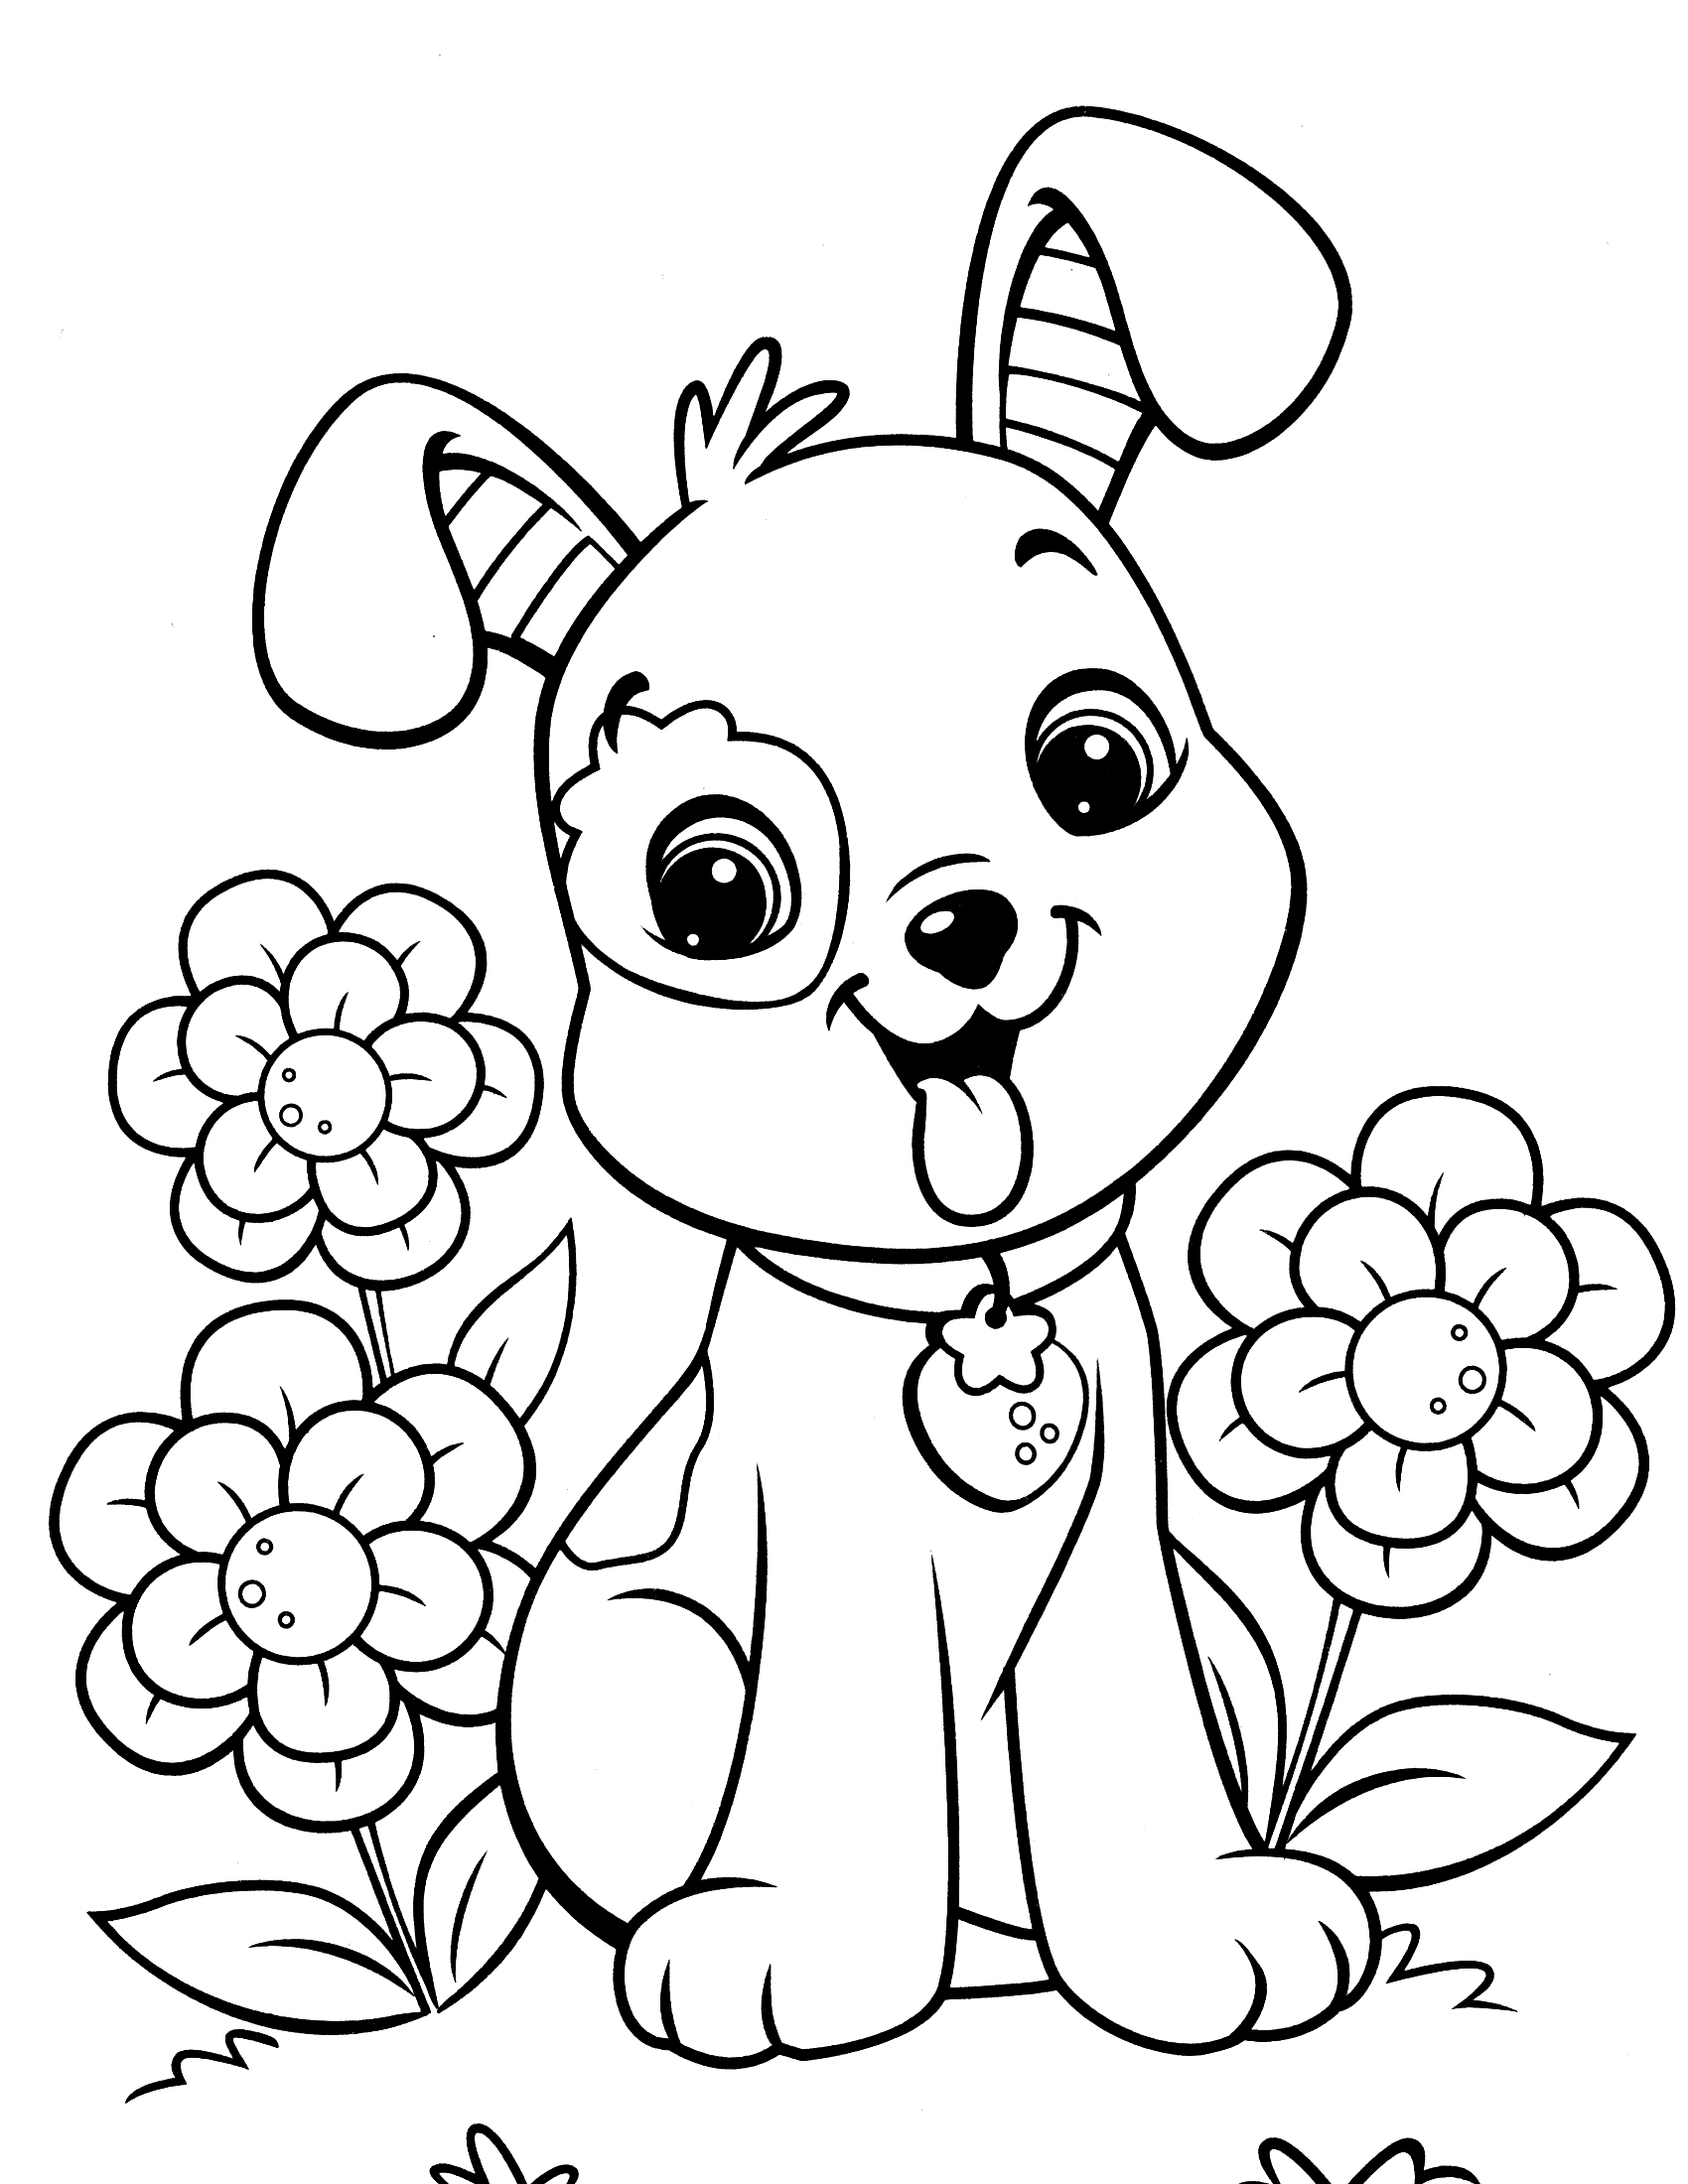 dogs pictures to color animals coloring pages cute puppy playing kids dogs color pictures to